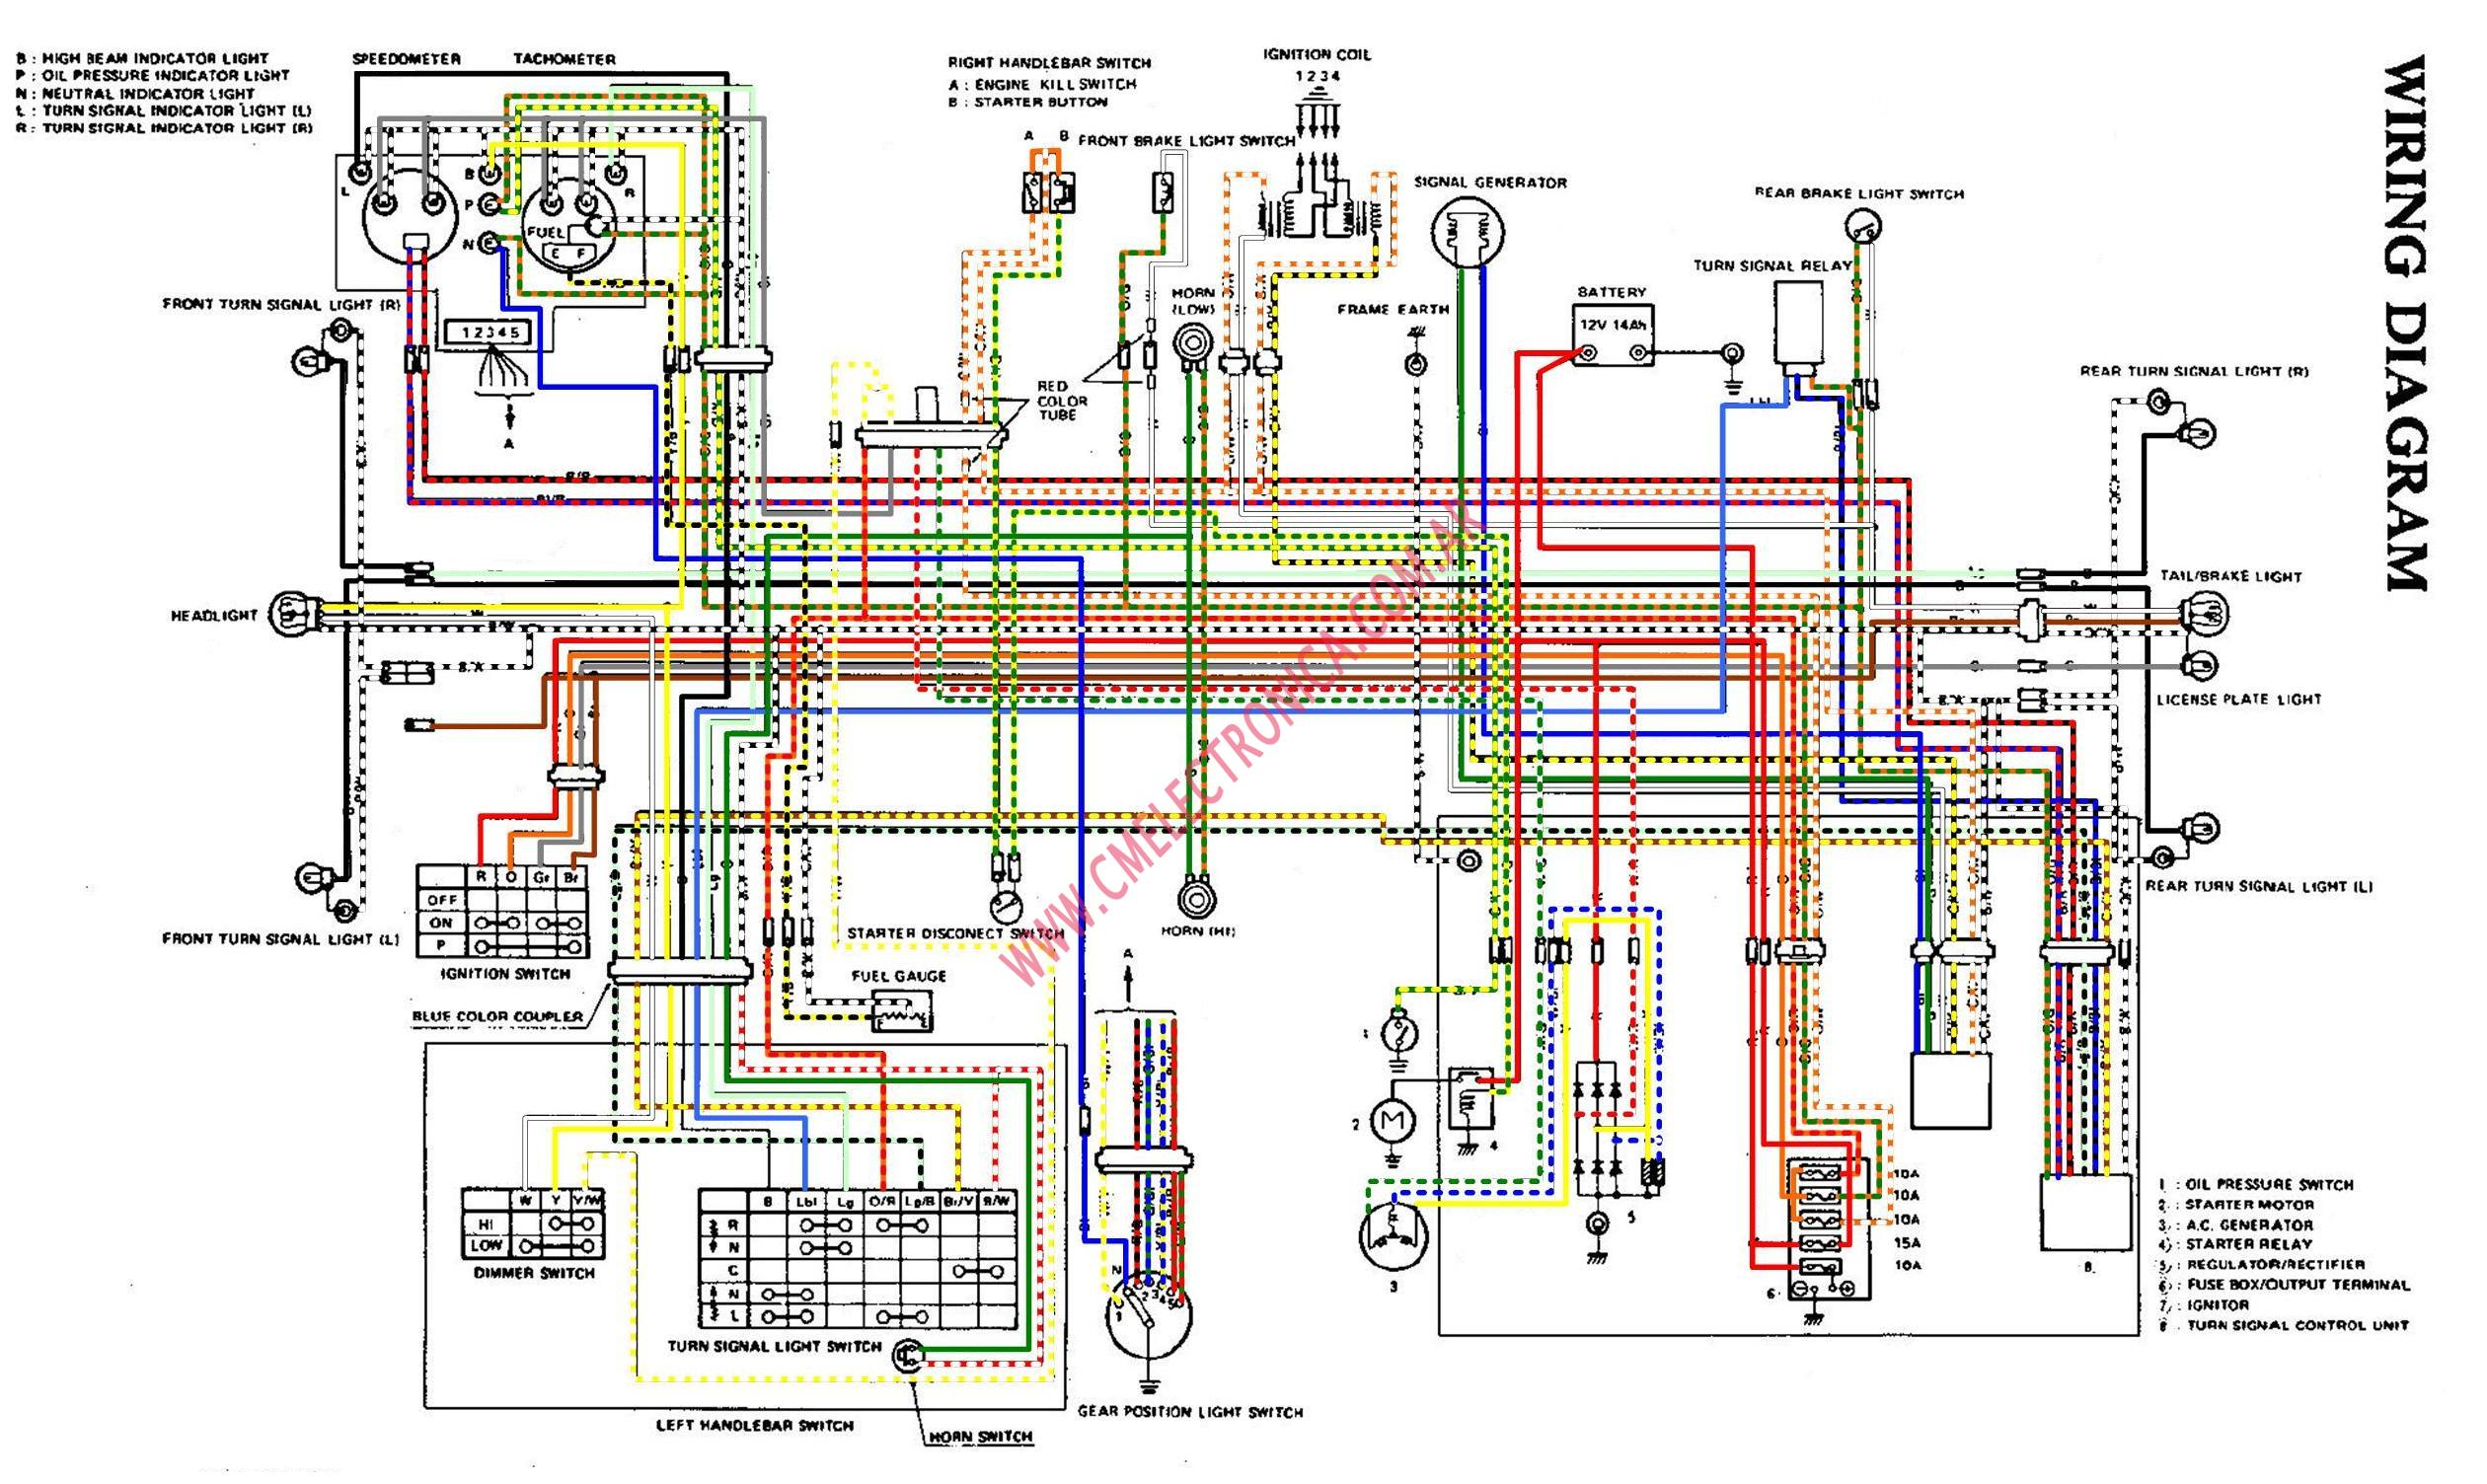 DIAGRAM] Honda Msx 125 Wiring Diagram FULL Version HD Quality Wiring Diagram  - DIAGRAMINGCO.CROSS-STUDIO.IT | Wiring Schematic Honda Msx125 |  | Diagram Database